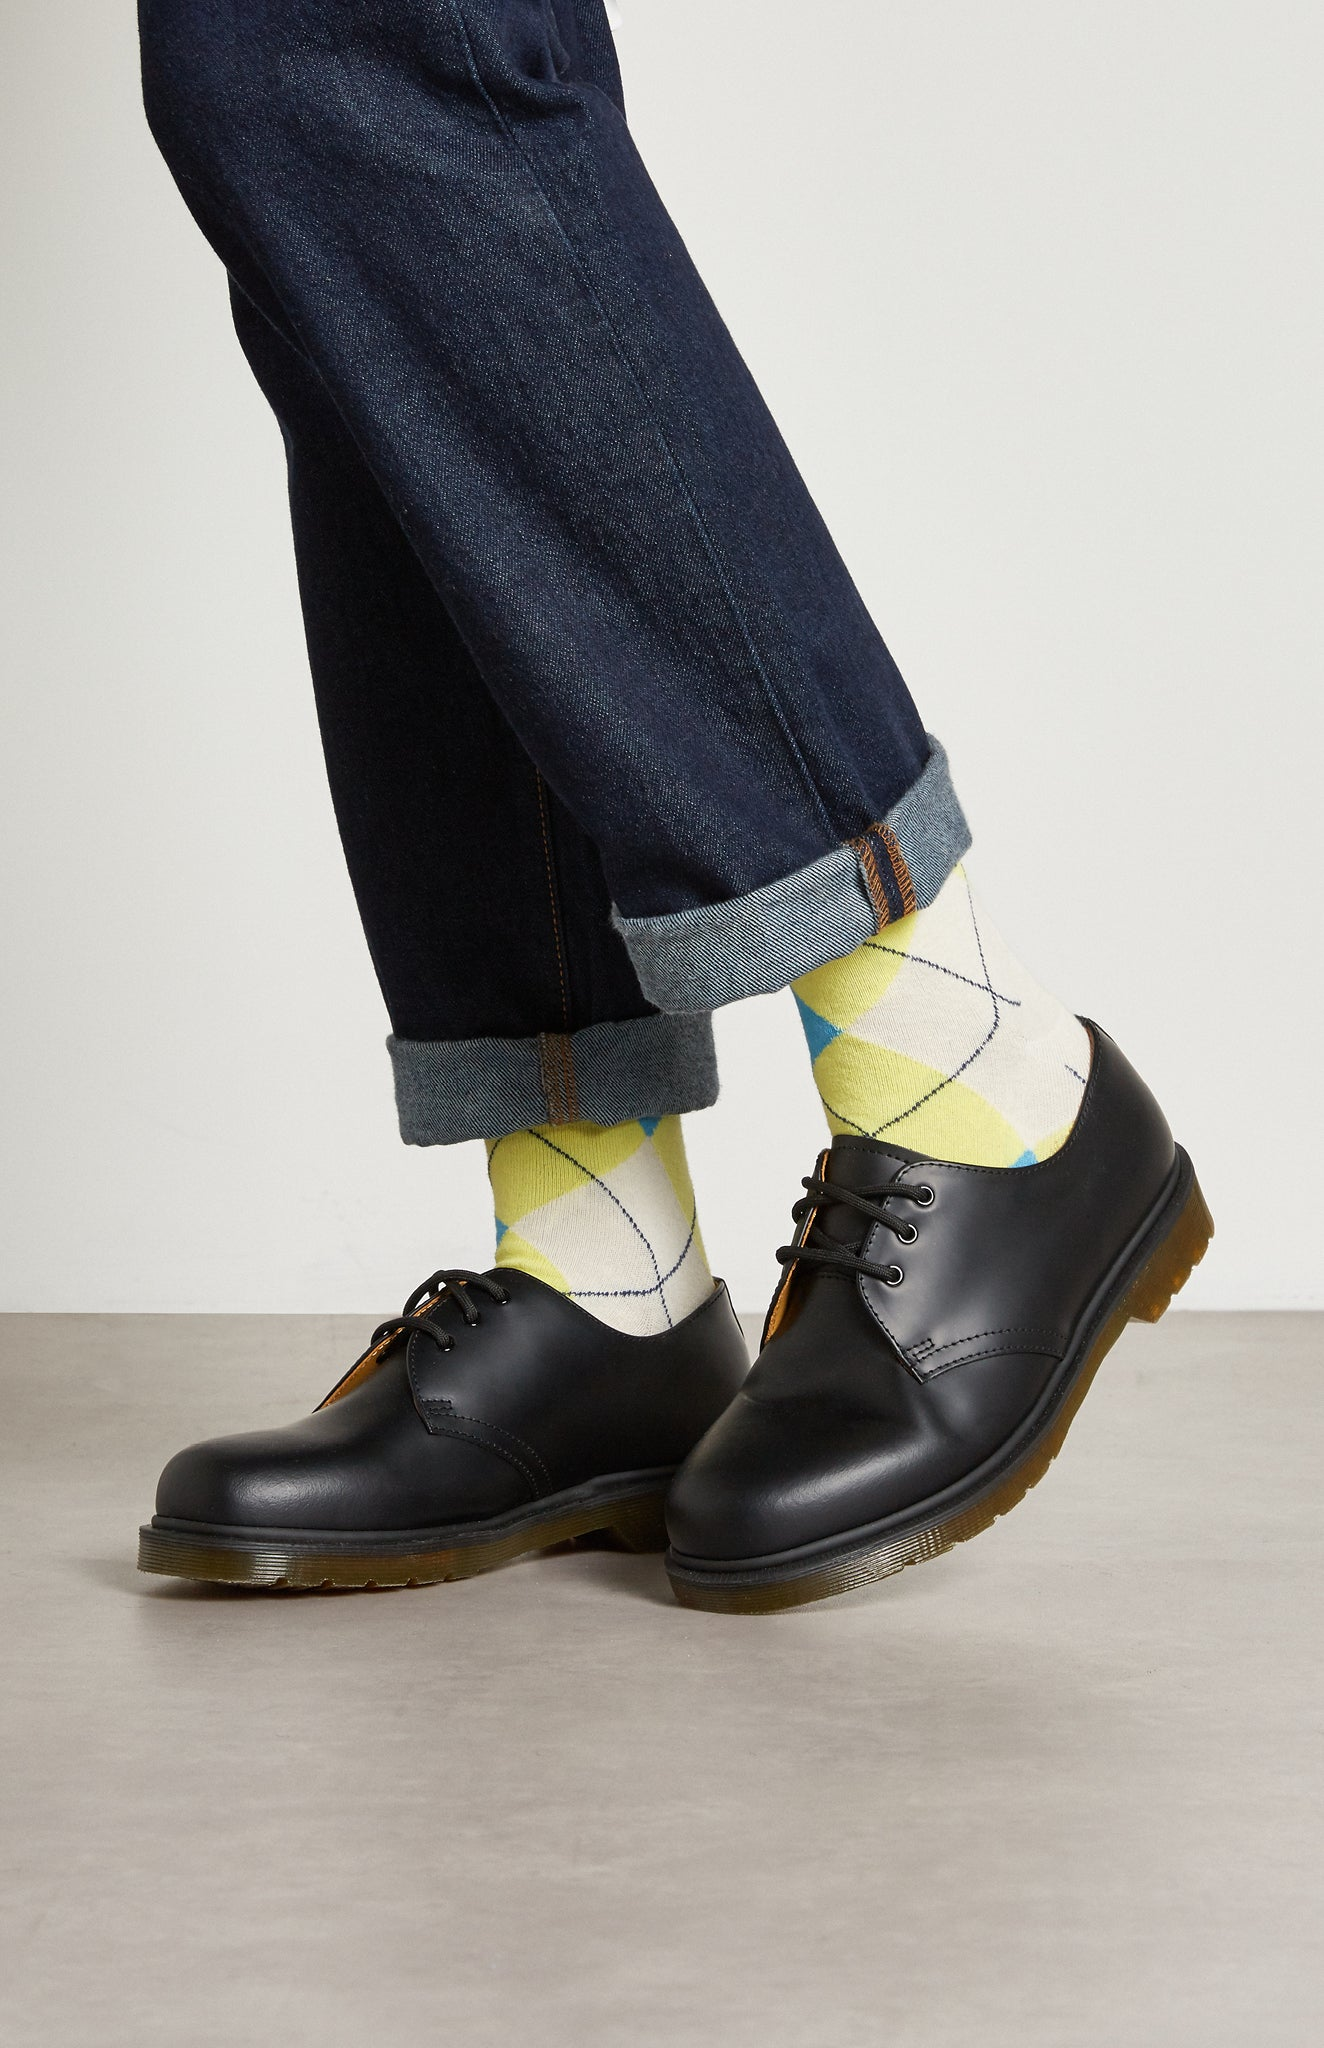 Pringle reissued Women's Classic Argyle Socks In Multi Lime